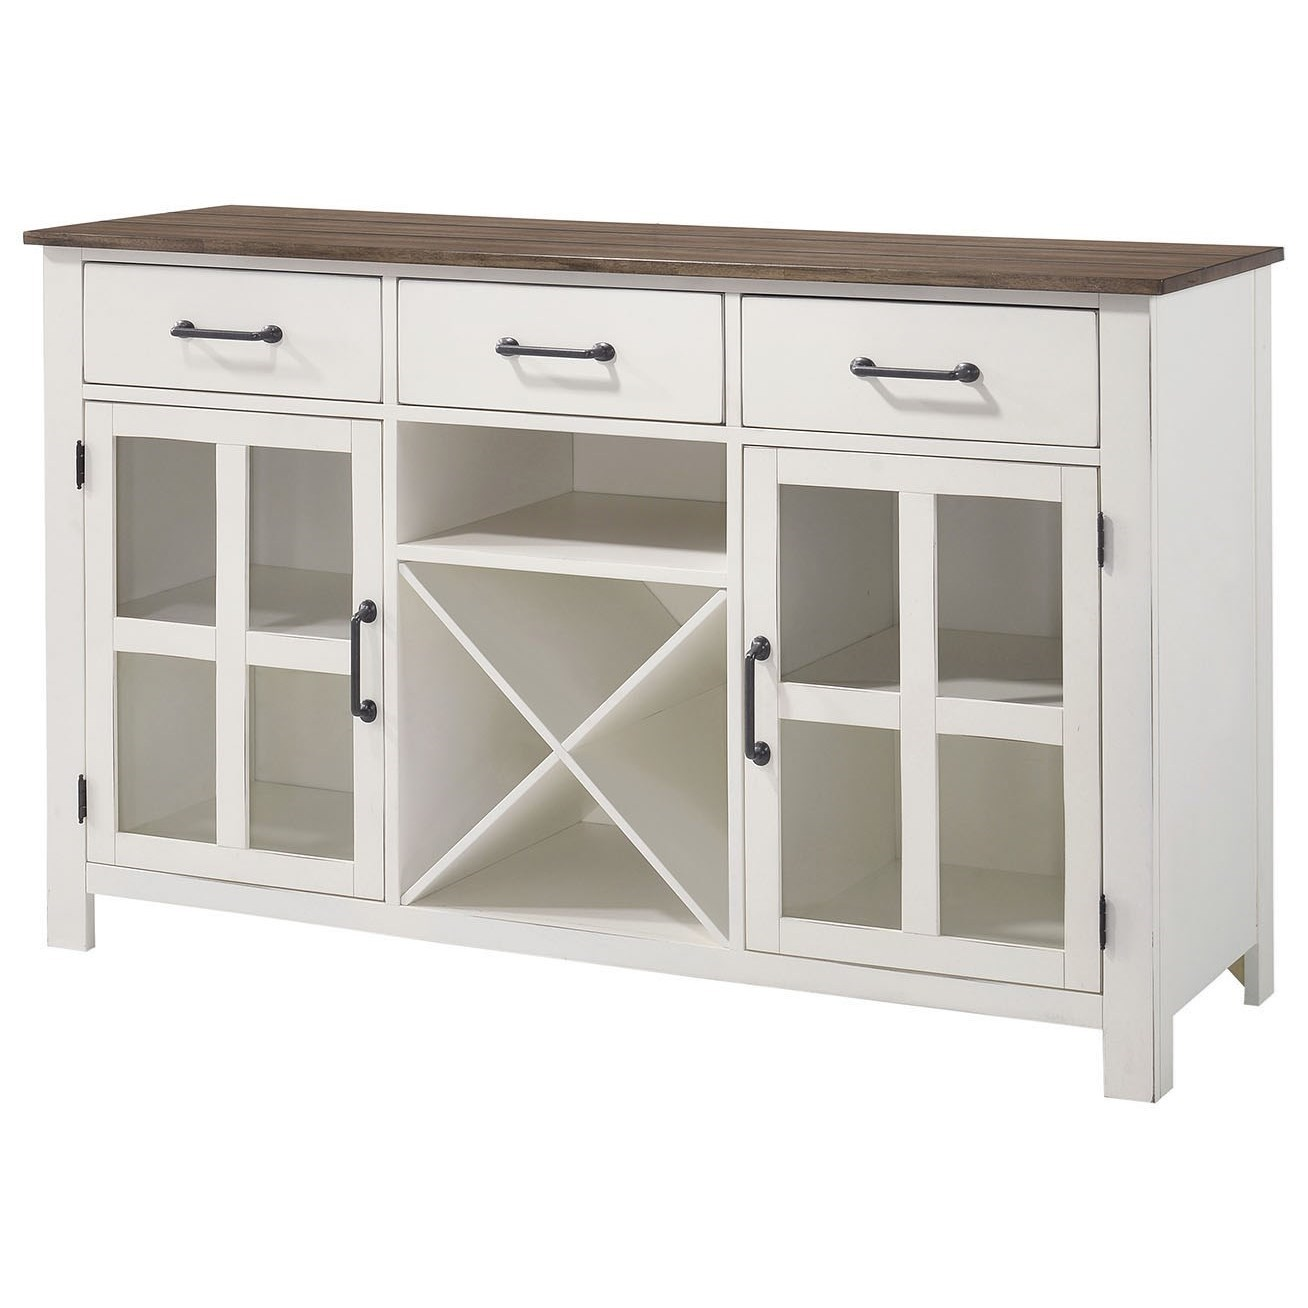 5057 Server by Lane at Esprit Decor Home Furnishings